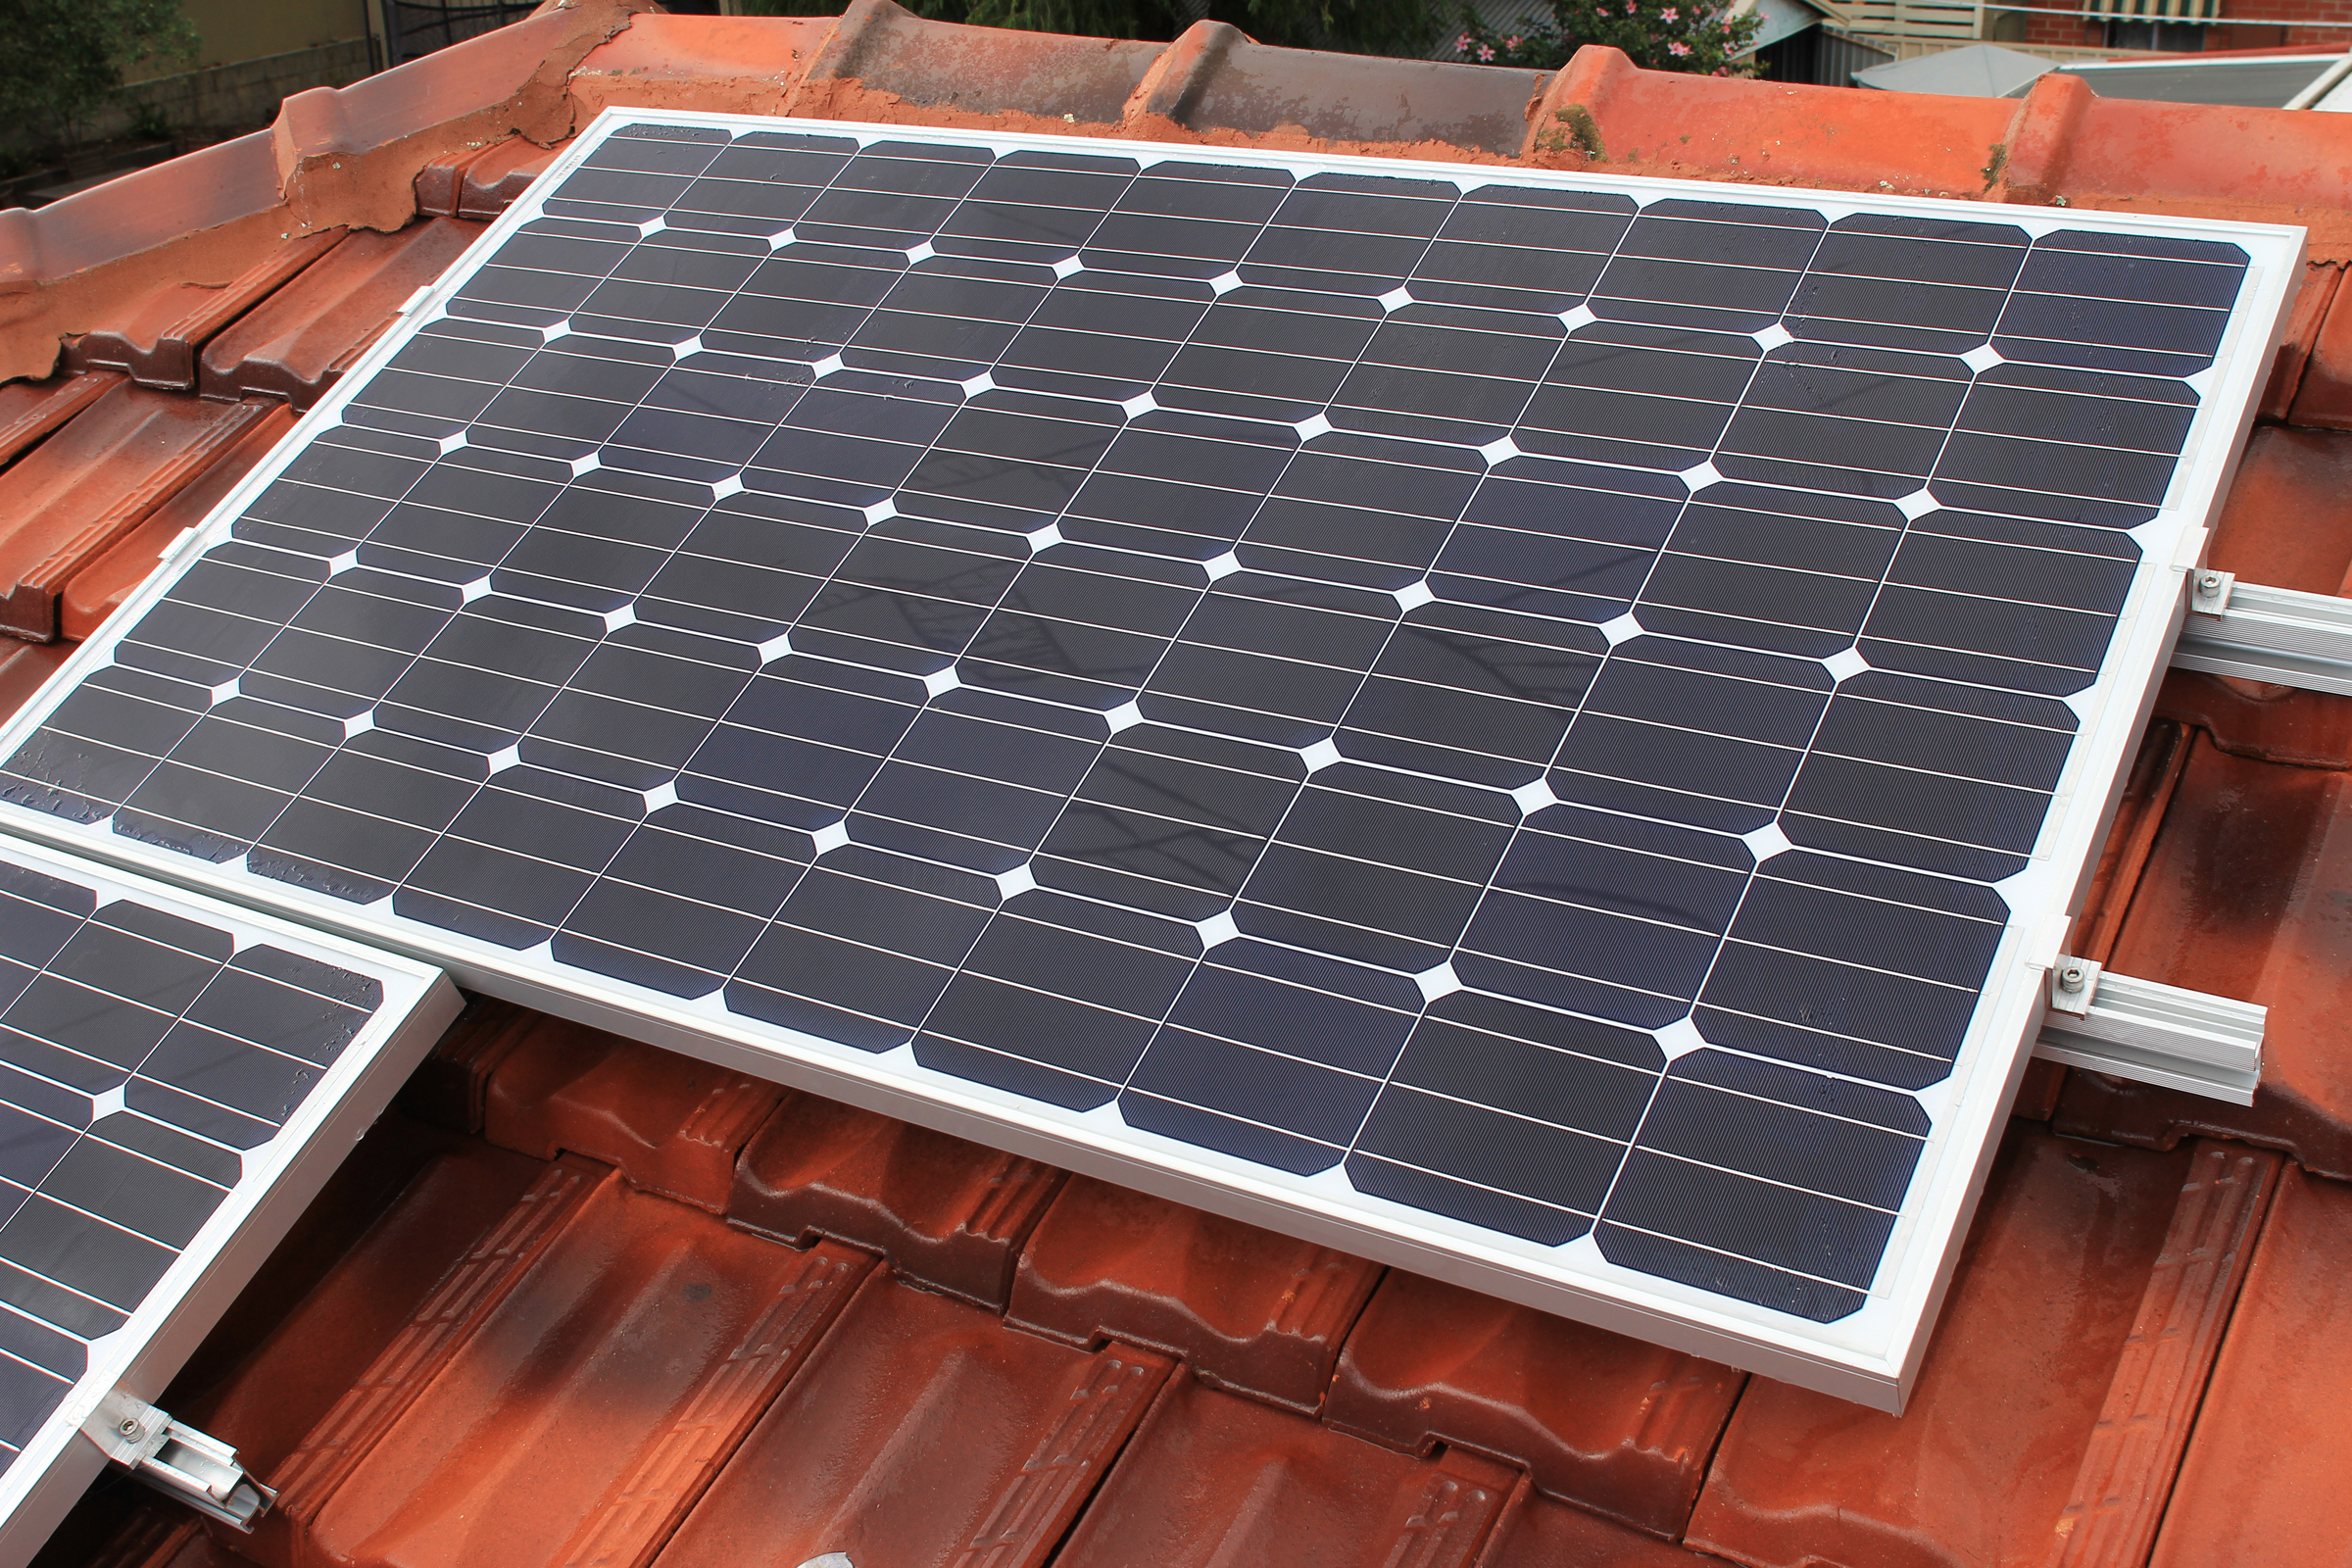 Snail Trail Contamination Of Pv Panels Solar Pv Discussion